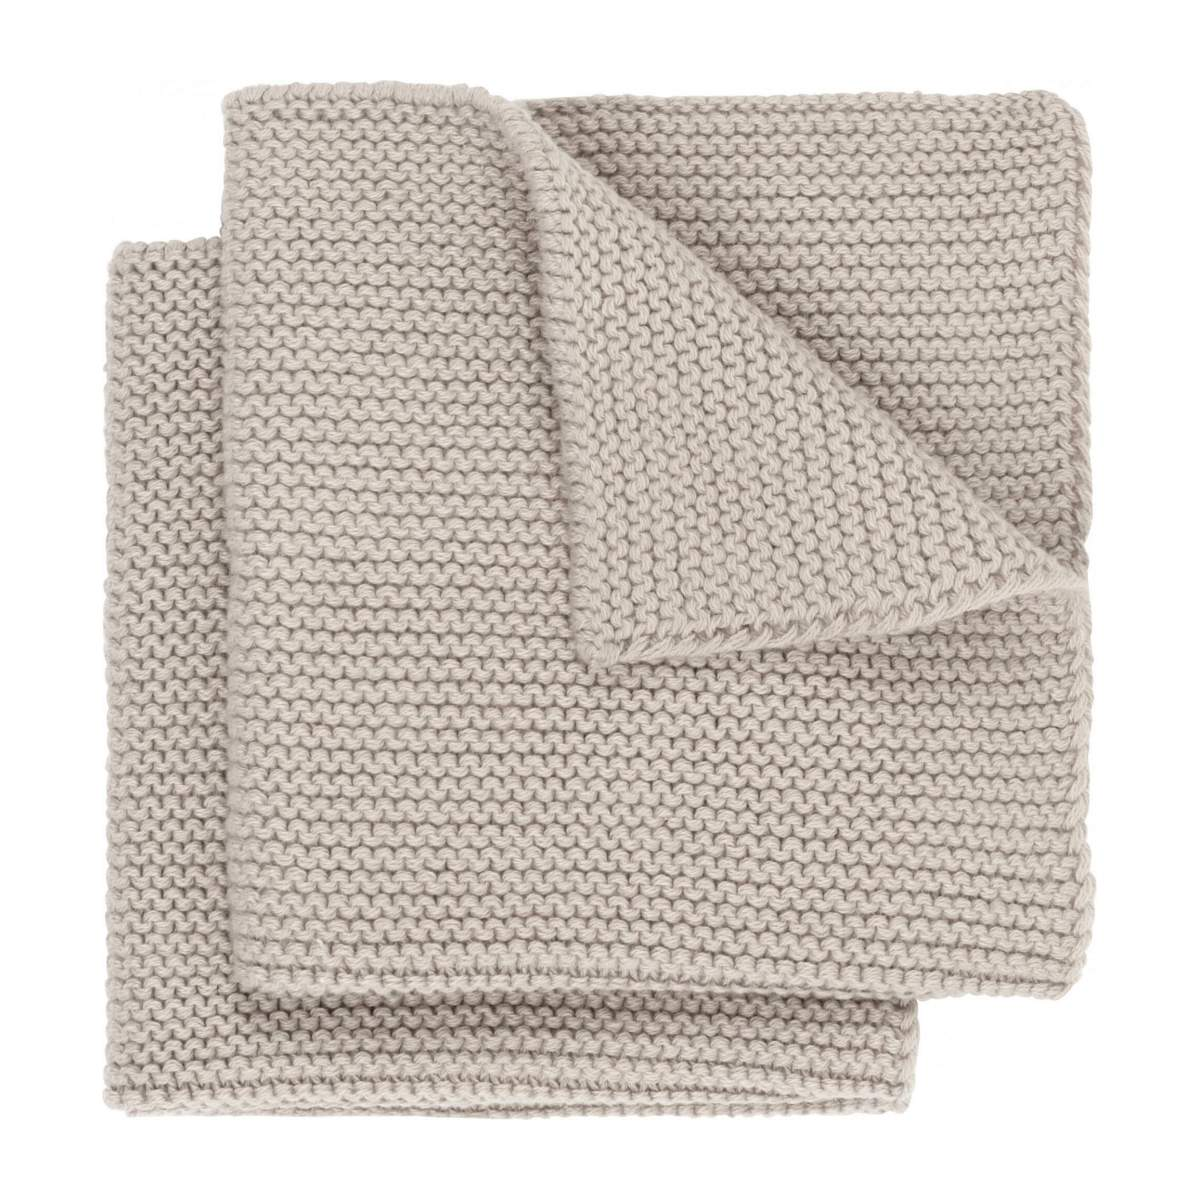 Lot de 2 serviettes de table en coton - 25 x 25 cm - Beige n°1